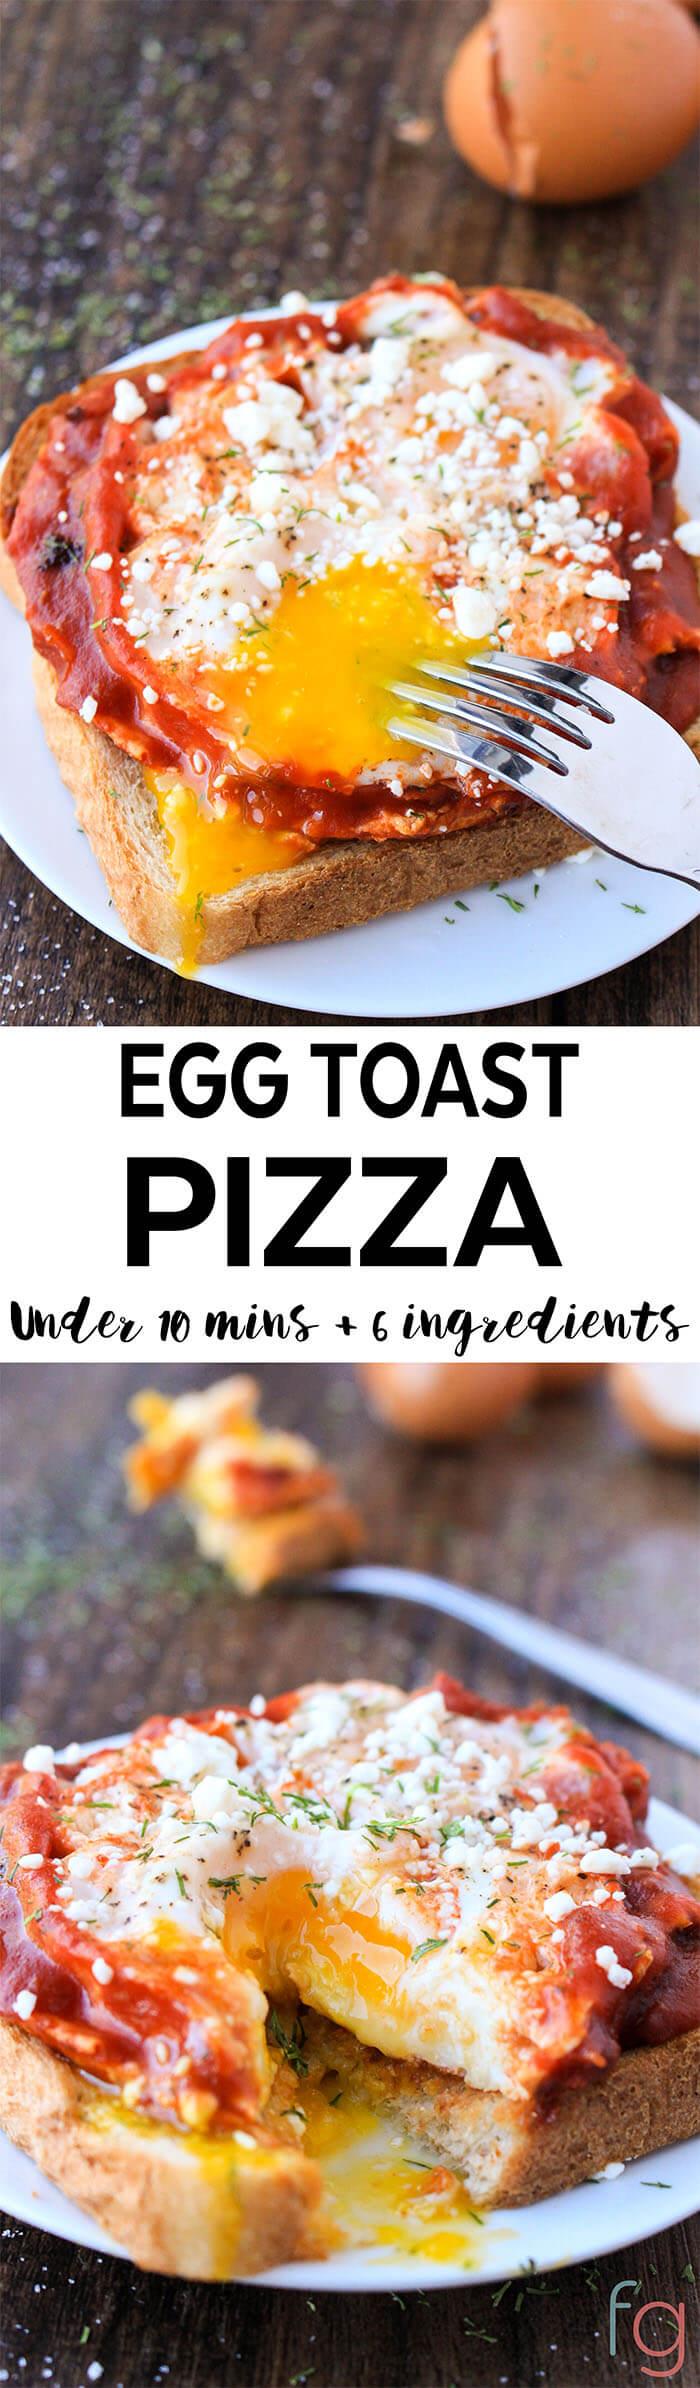 This egg toast pizza is such an easy and quick breakfast idea. Ready in under ten minutes!